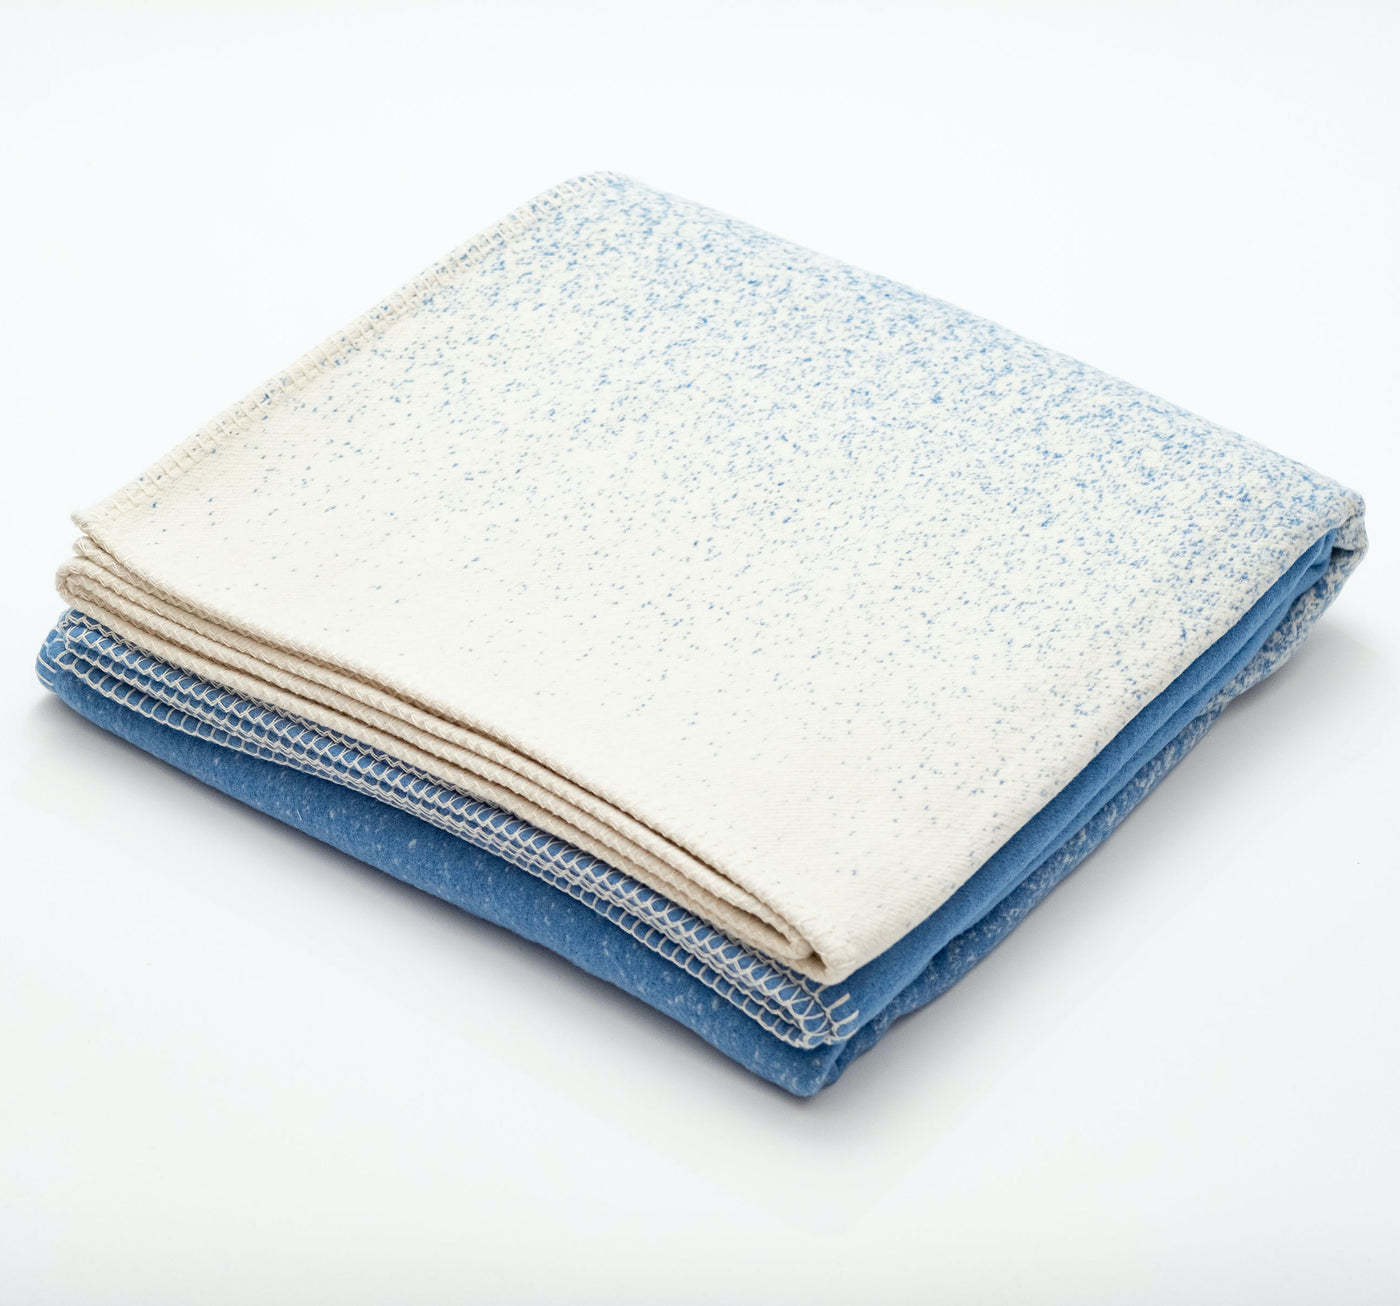 Blue Sea Spray Recycled Cotton Blanket